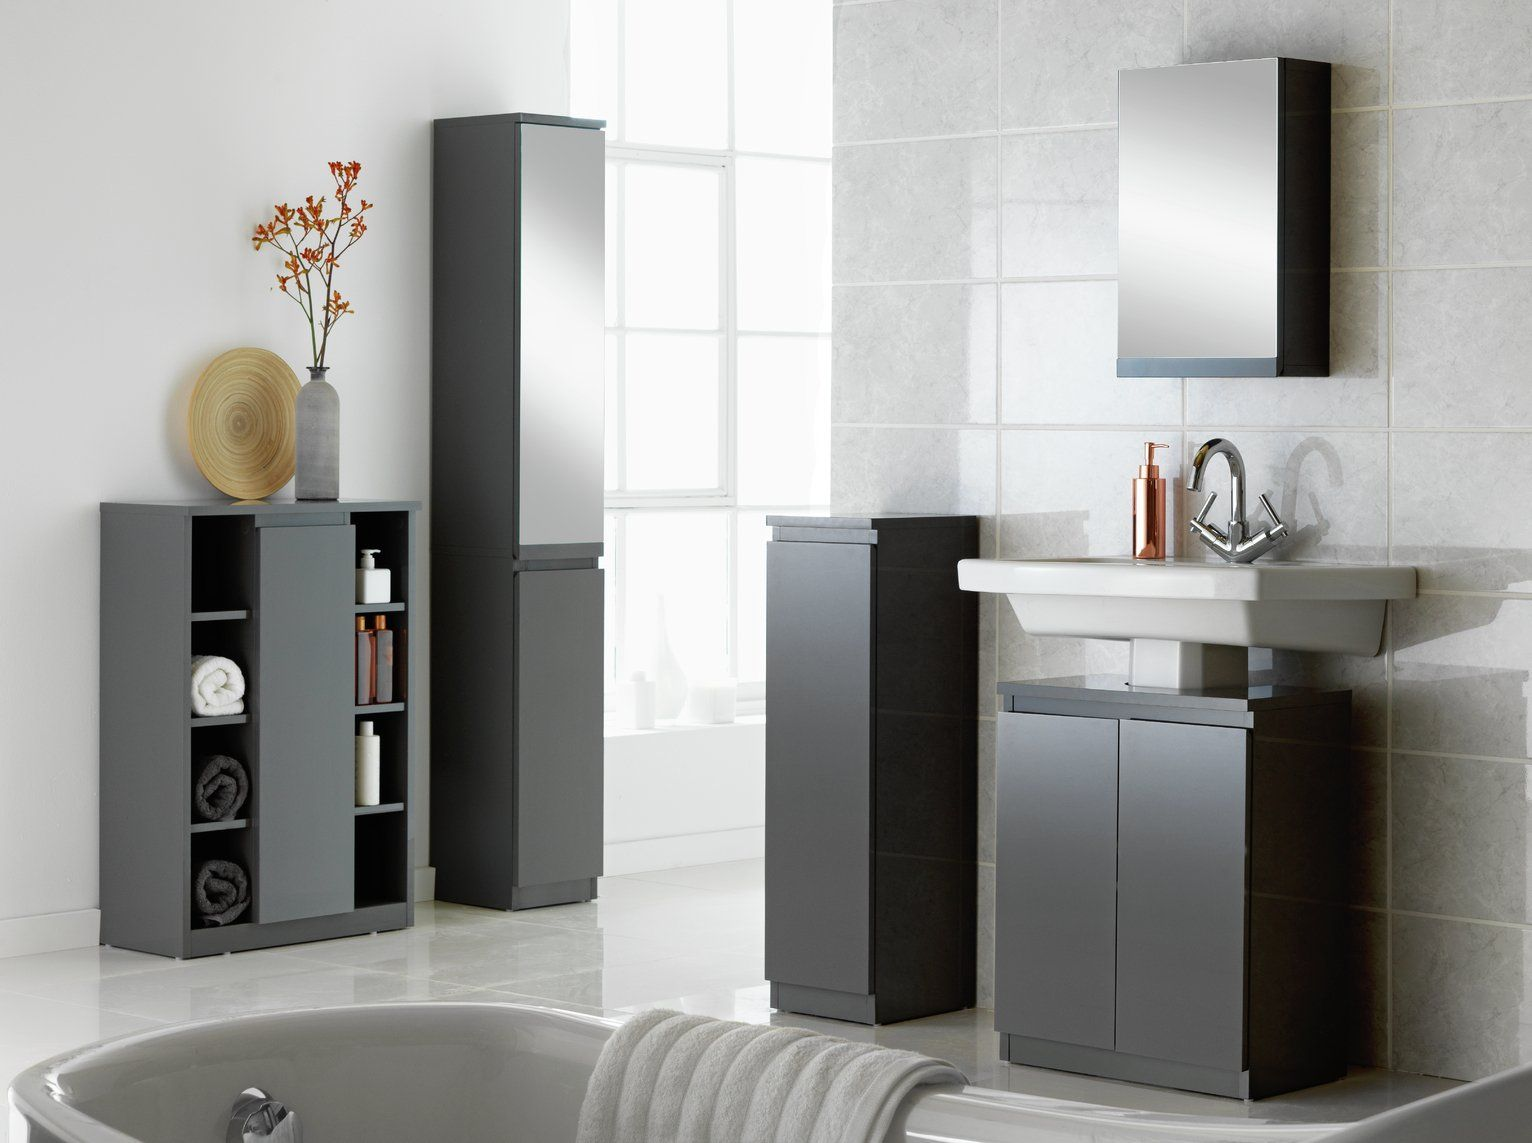 Argos Home Gloss Undersink Storage - Grey  Tall bathroom storage